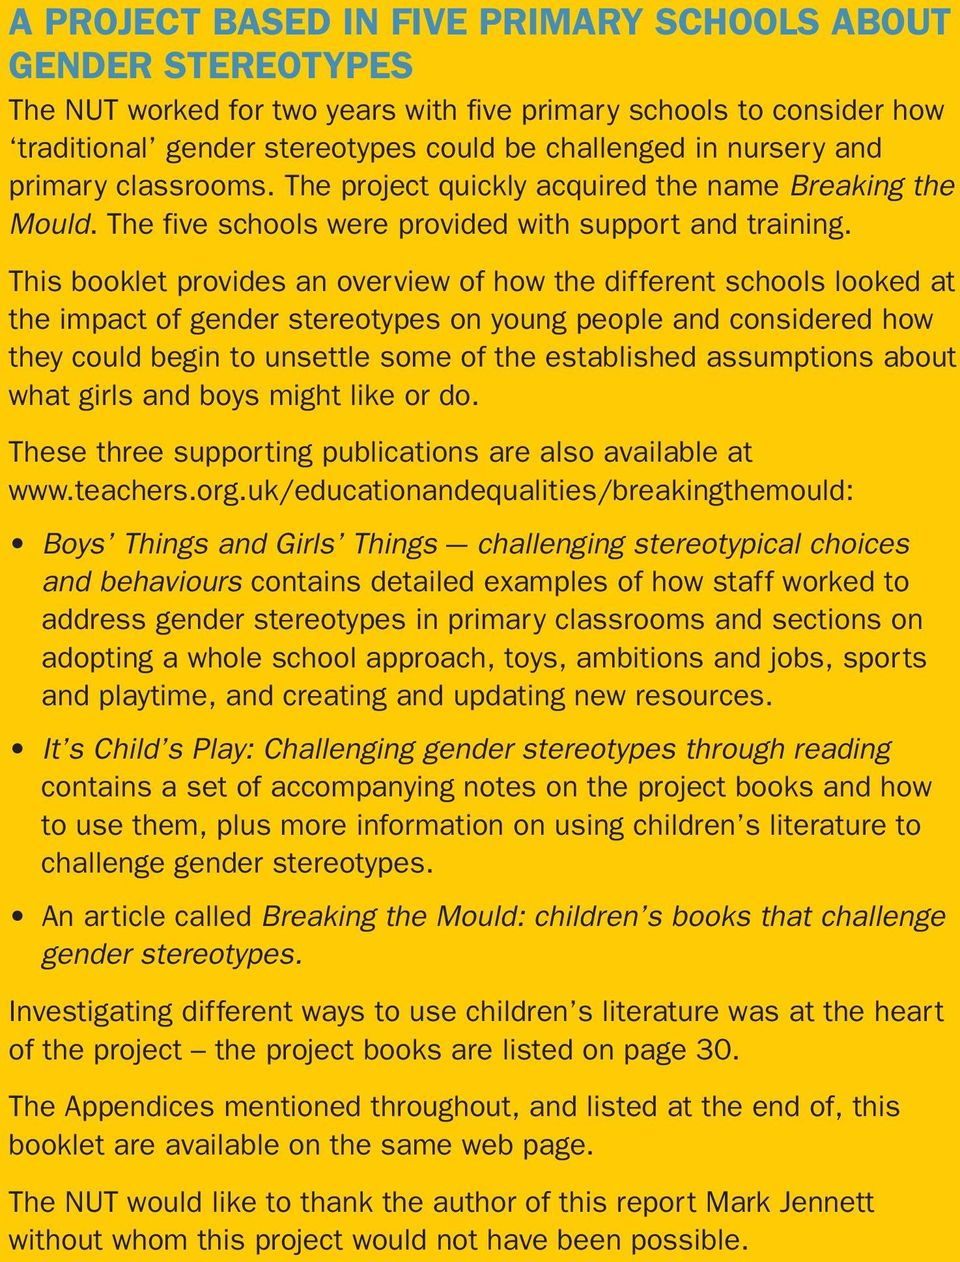 This booklet provides an overview of how the different schools looked at the impact of gender stereotypes on young people and considered how they could begin to unsettle some of the established